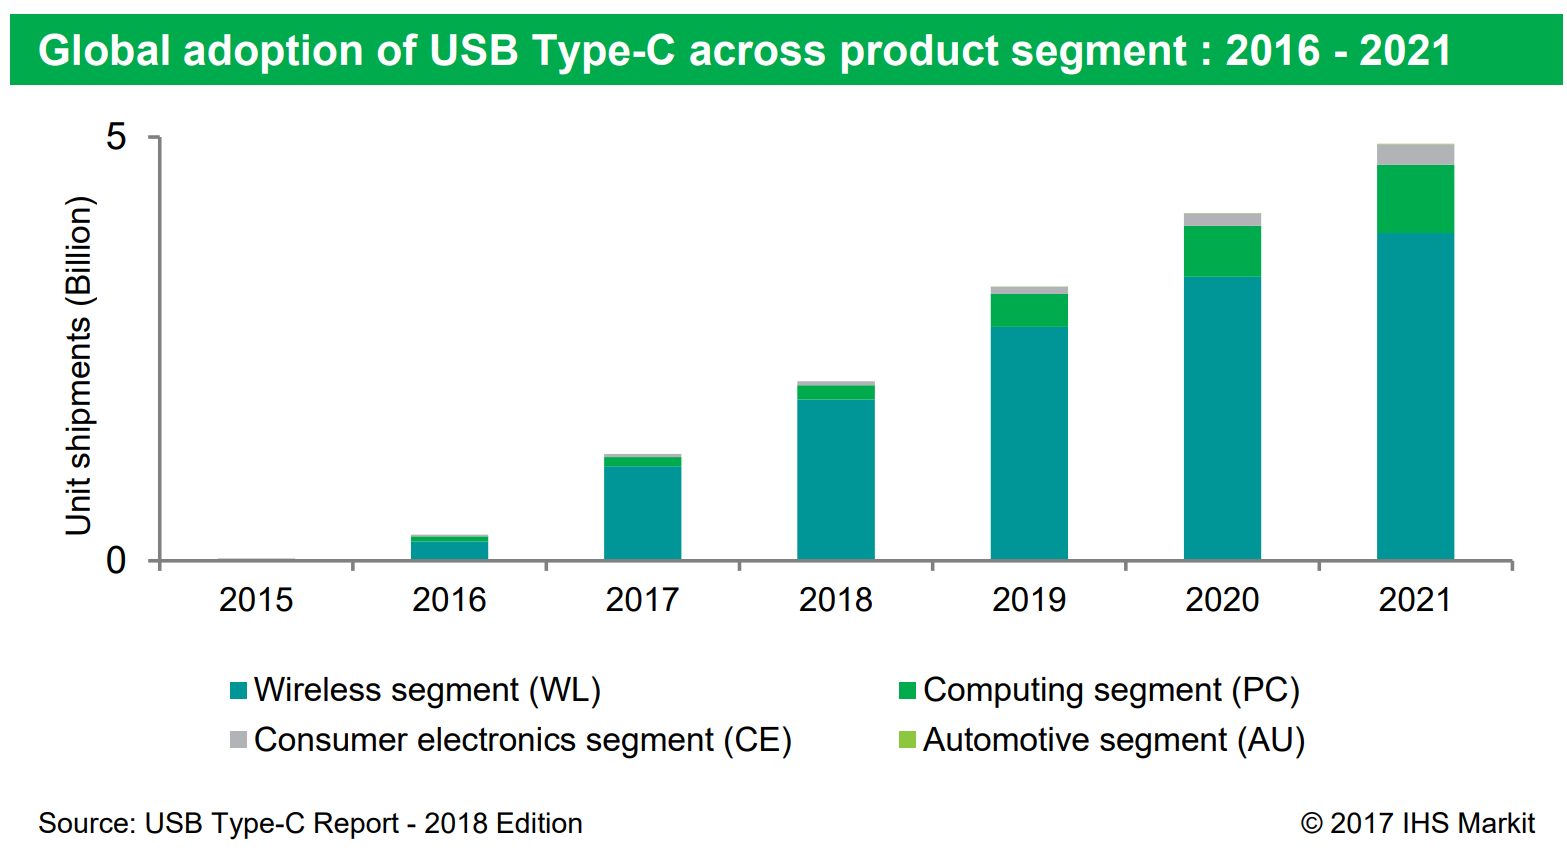 ucb investment flexible variable rate 2021